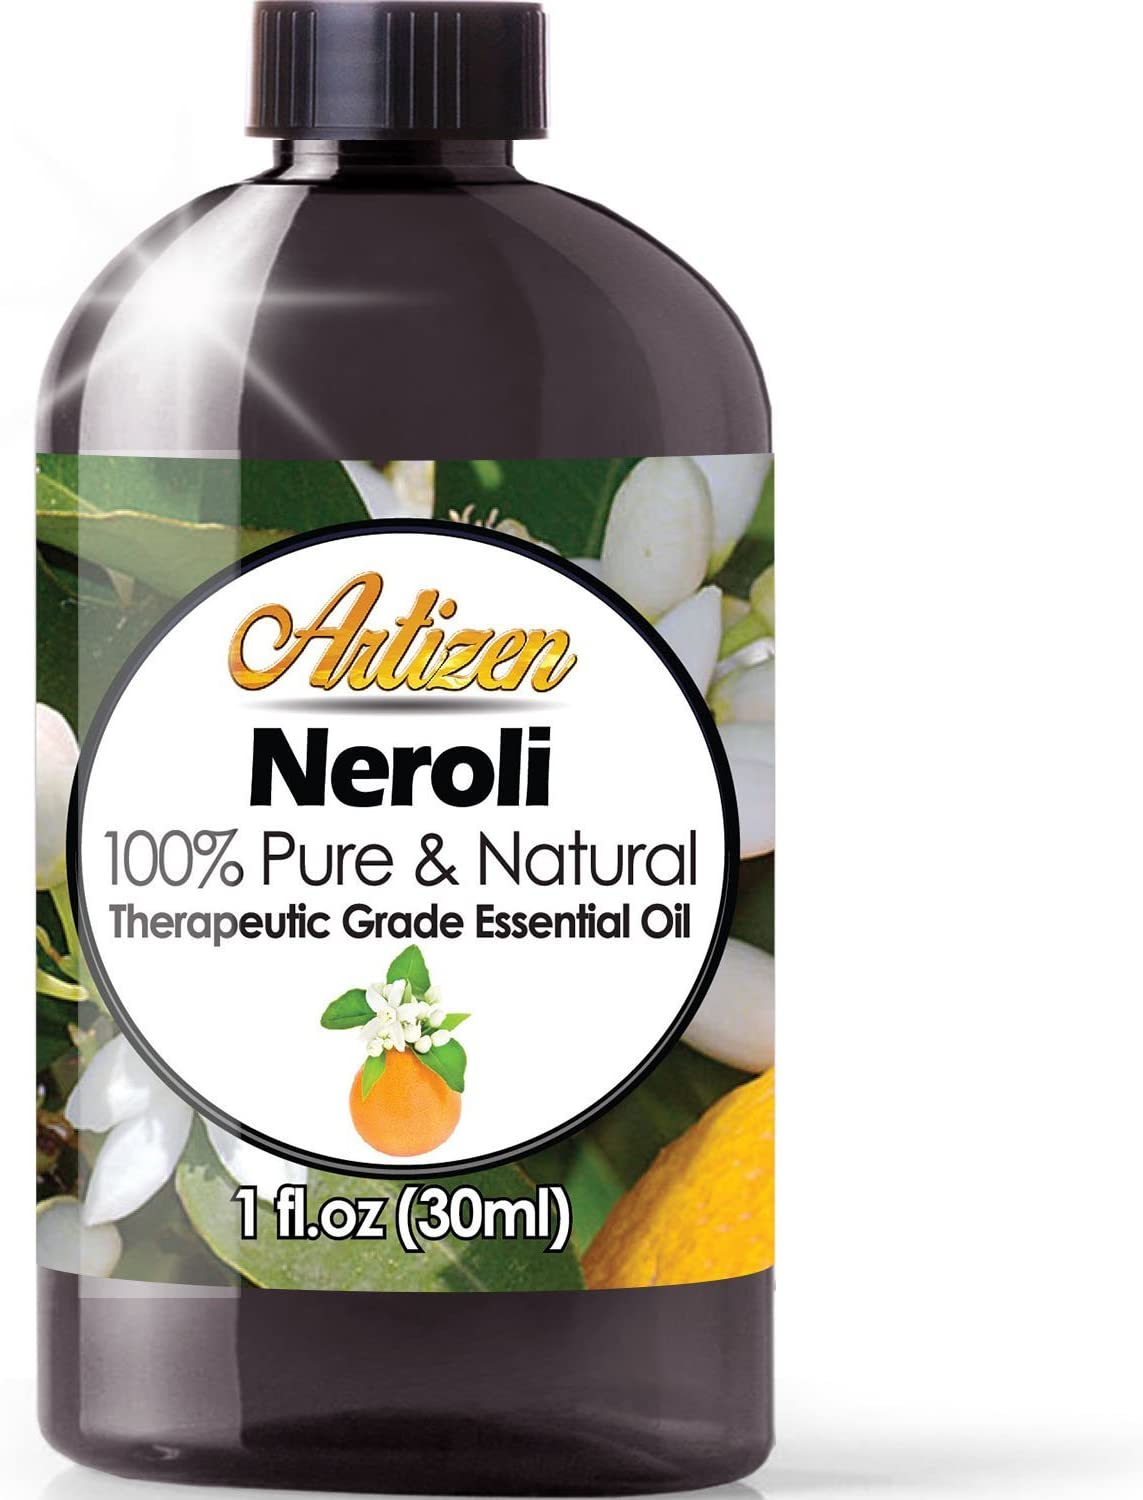 Artizen Neroli Essential Oil (100% Pure & Natural - UNDILUTED) Therapeutic Grade - Huge 1oz Bottle - Perfect for Aromatherapy, Relaxation, Skin Therapy & More!